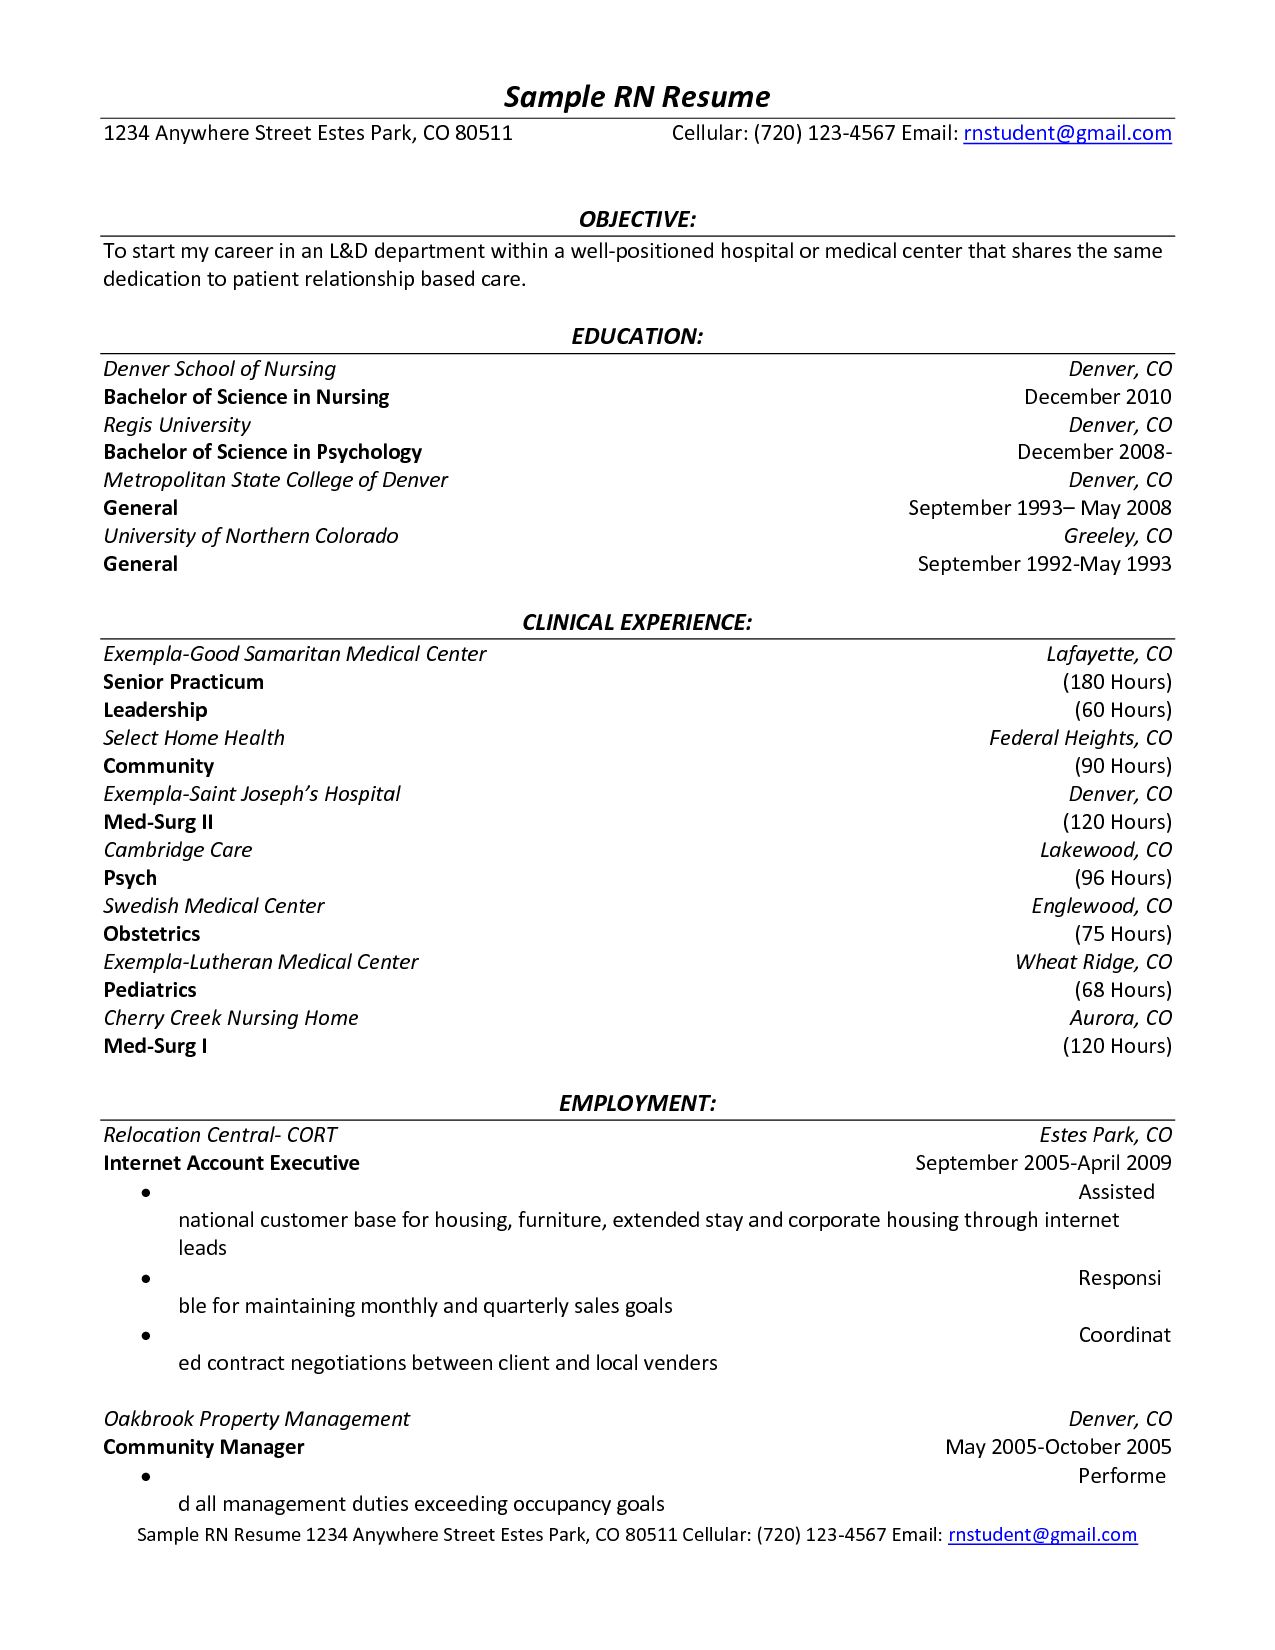 Sample Resume Hospital Volunteer Experience How To StartVolunteer Resume  Business Letter Sample